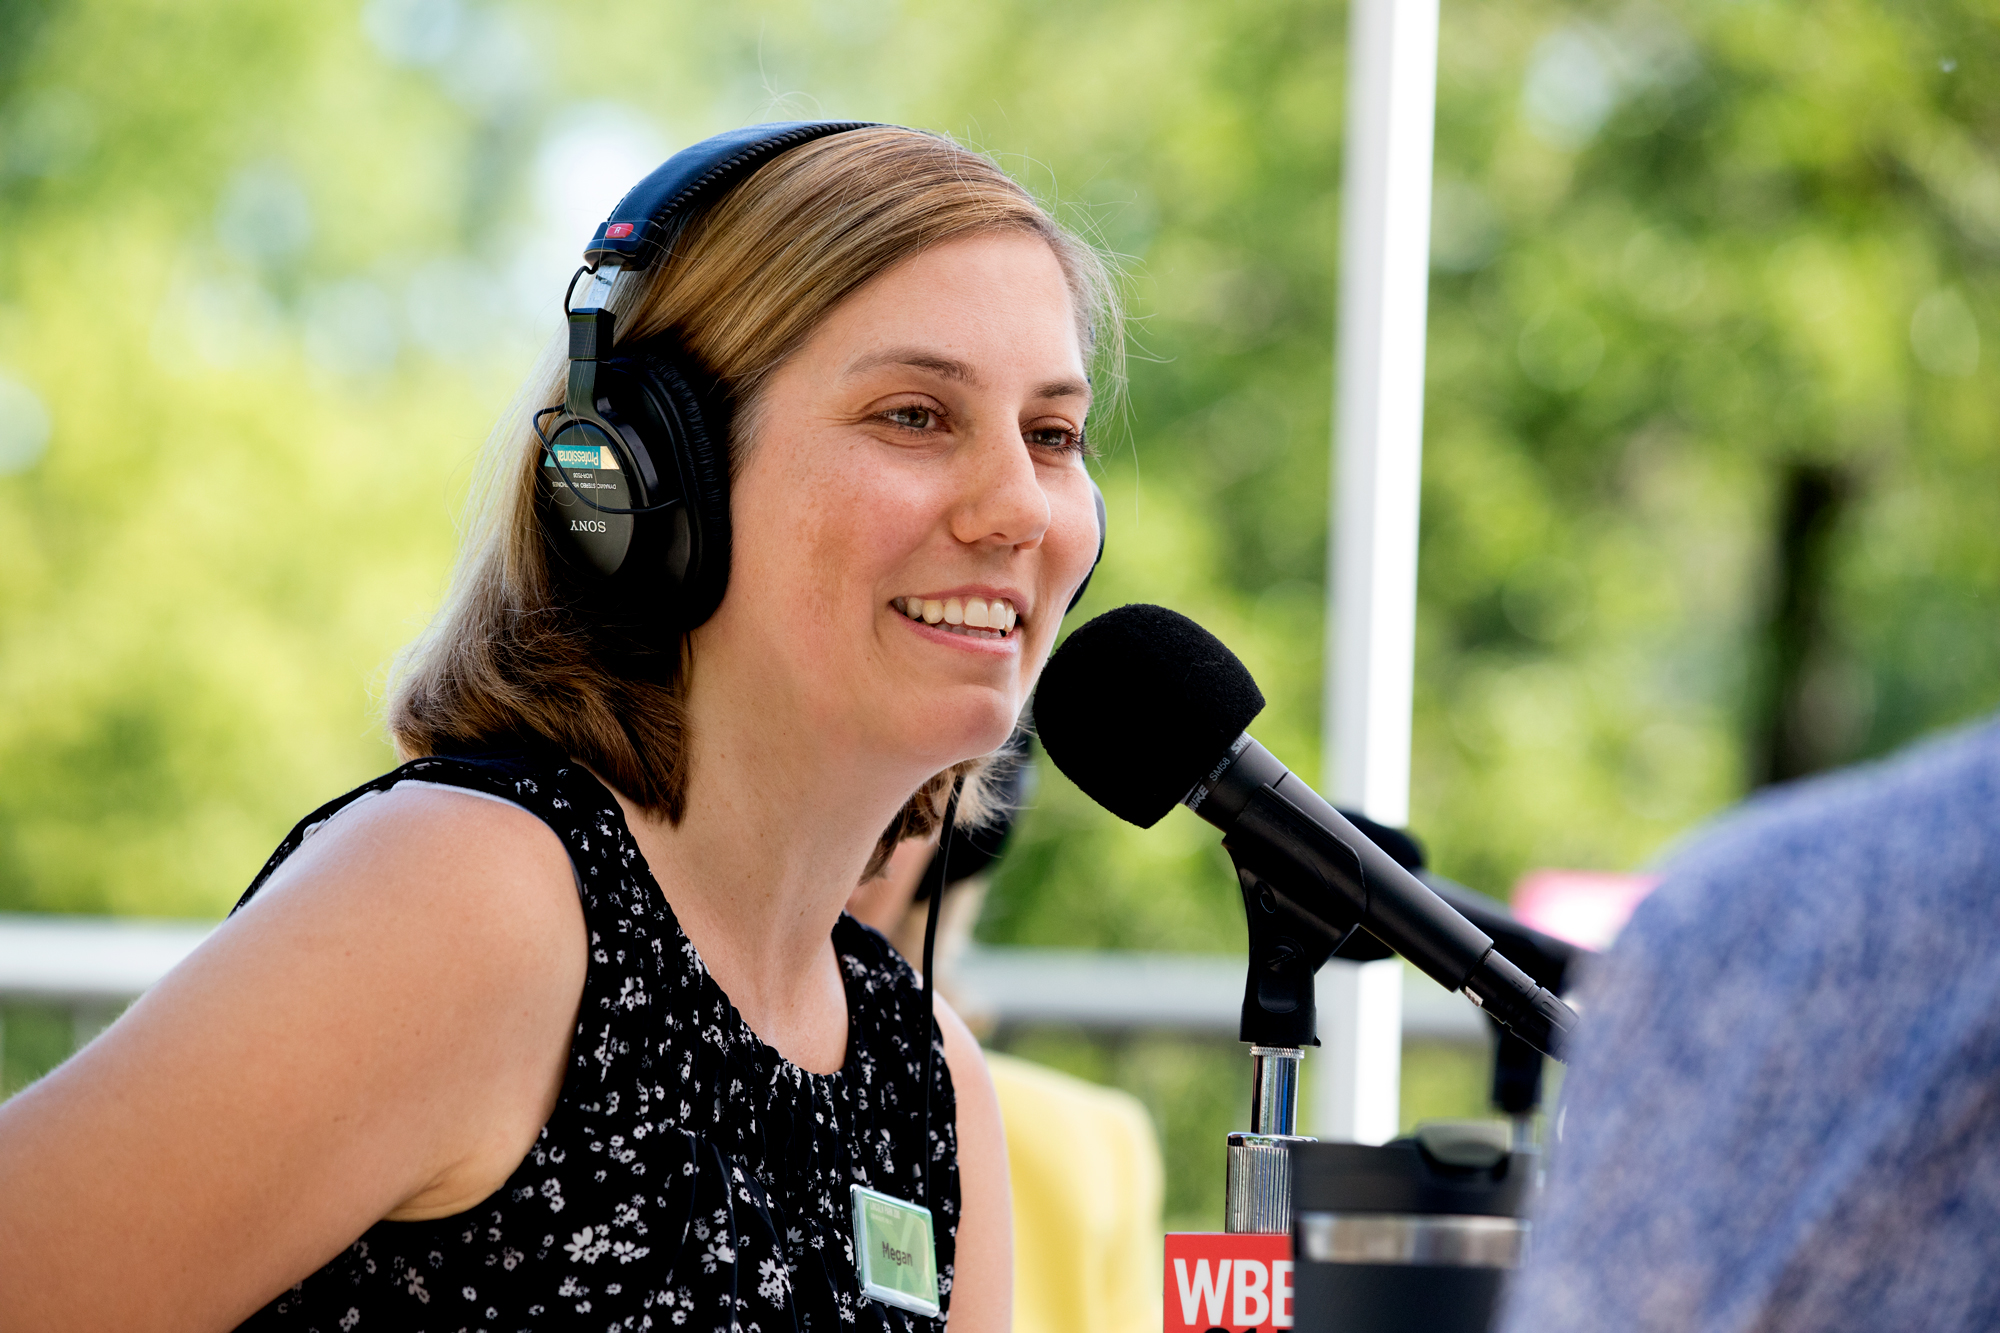 Megan Ross is the Lincoln Park Zoo's executive vice president. She says visitors to zoos and aquaria 'have the opportunity to see up close things that perhaps, and most likely for many of them, they're never going to see in the wild.' (Andrew Gill/WBEZ)